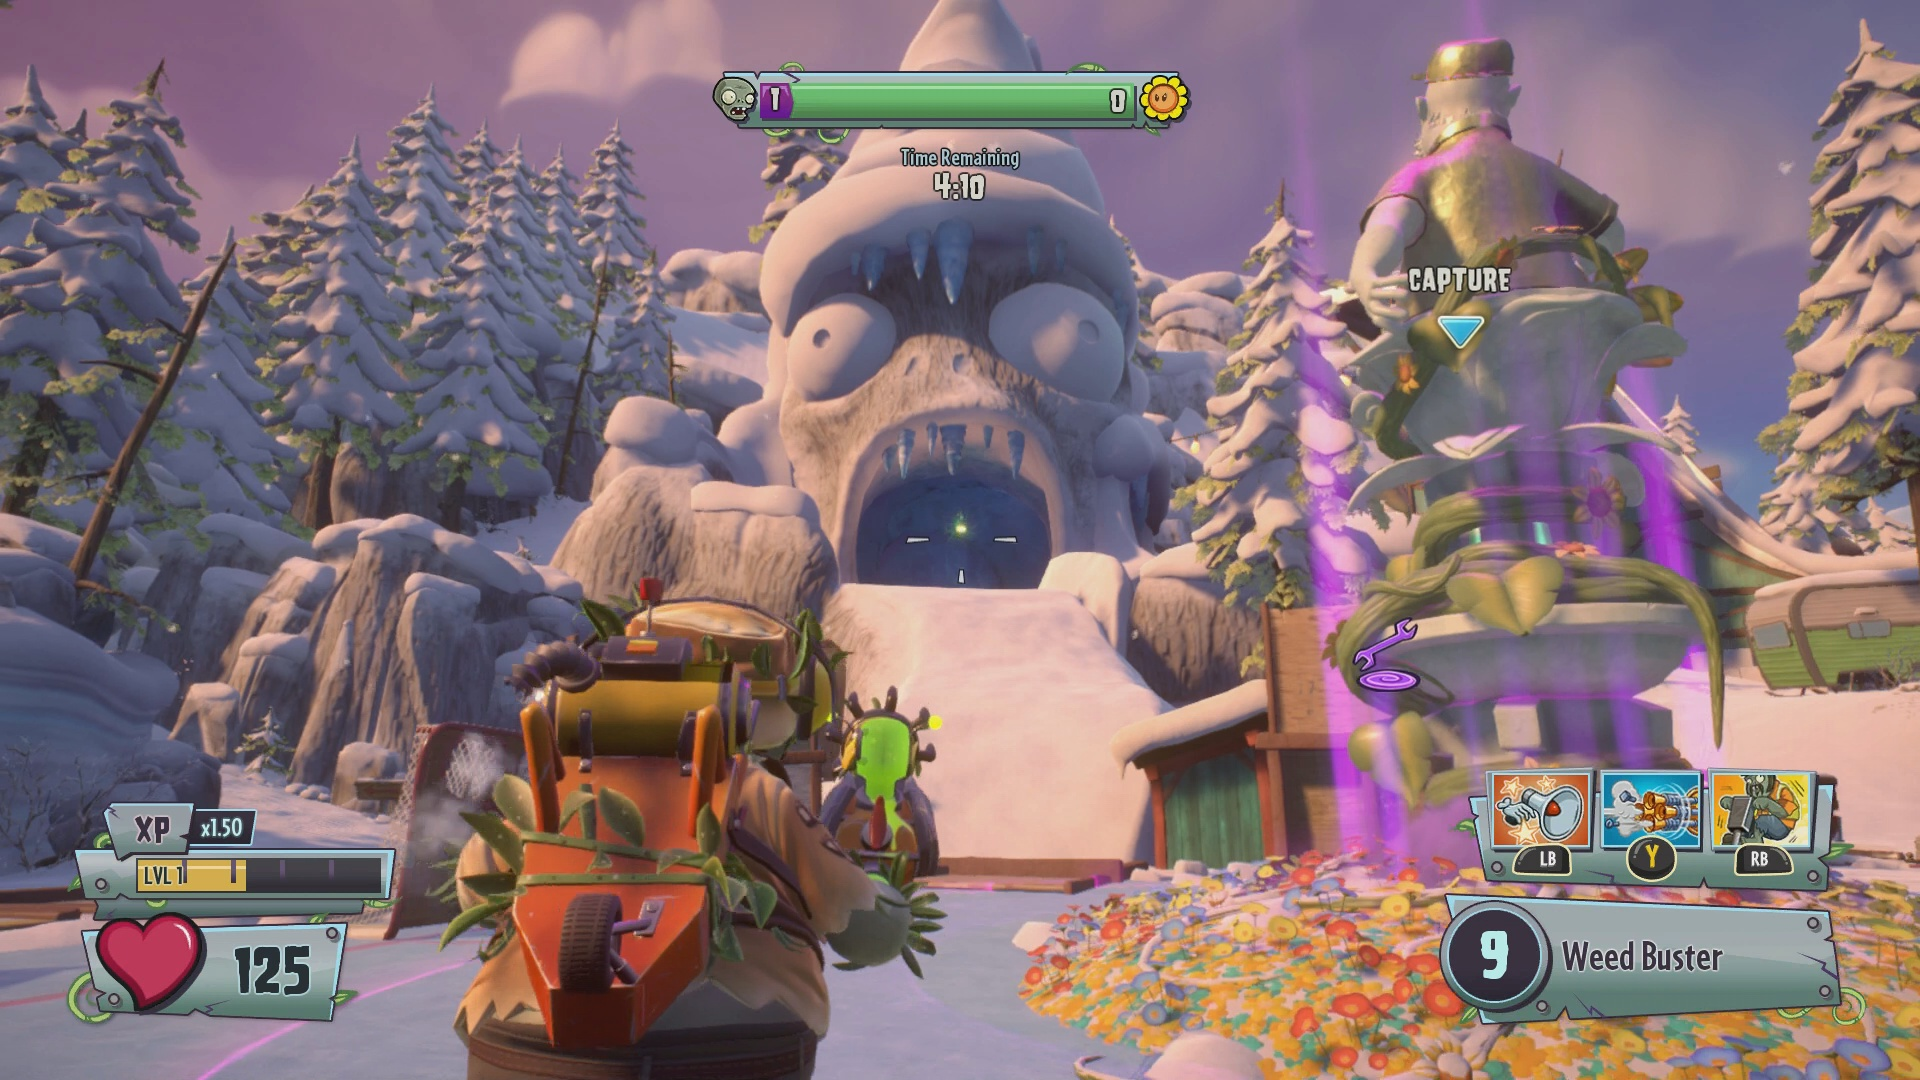 Plants Vs Zombies Garden Warfare 2 Golden Gnome